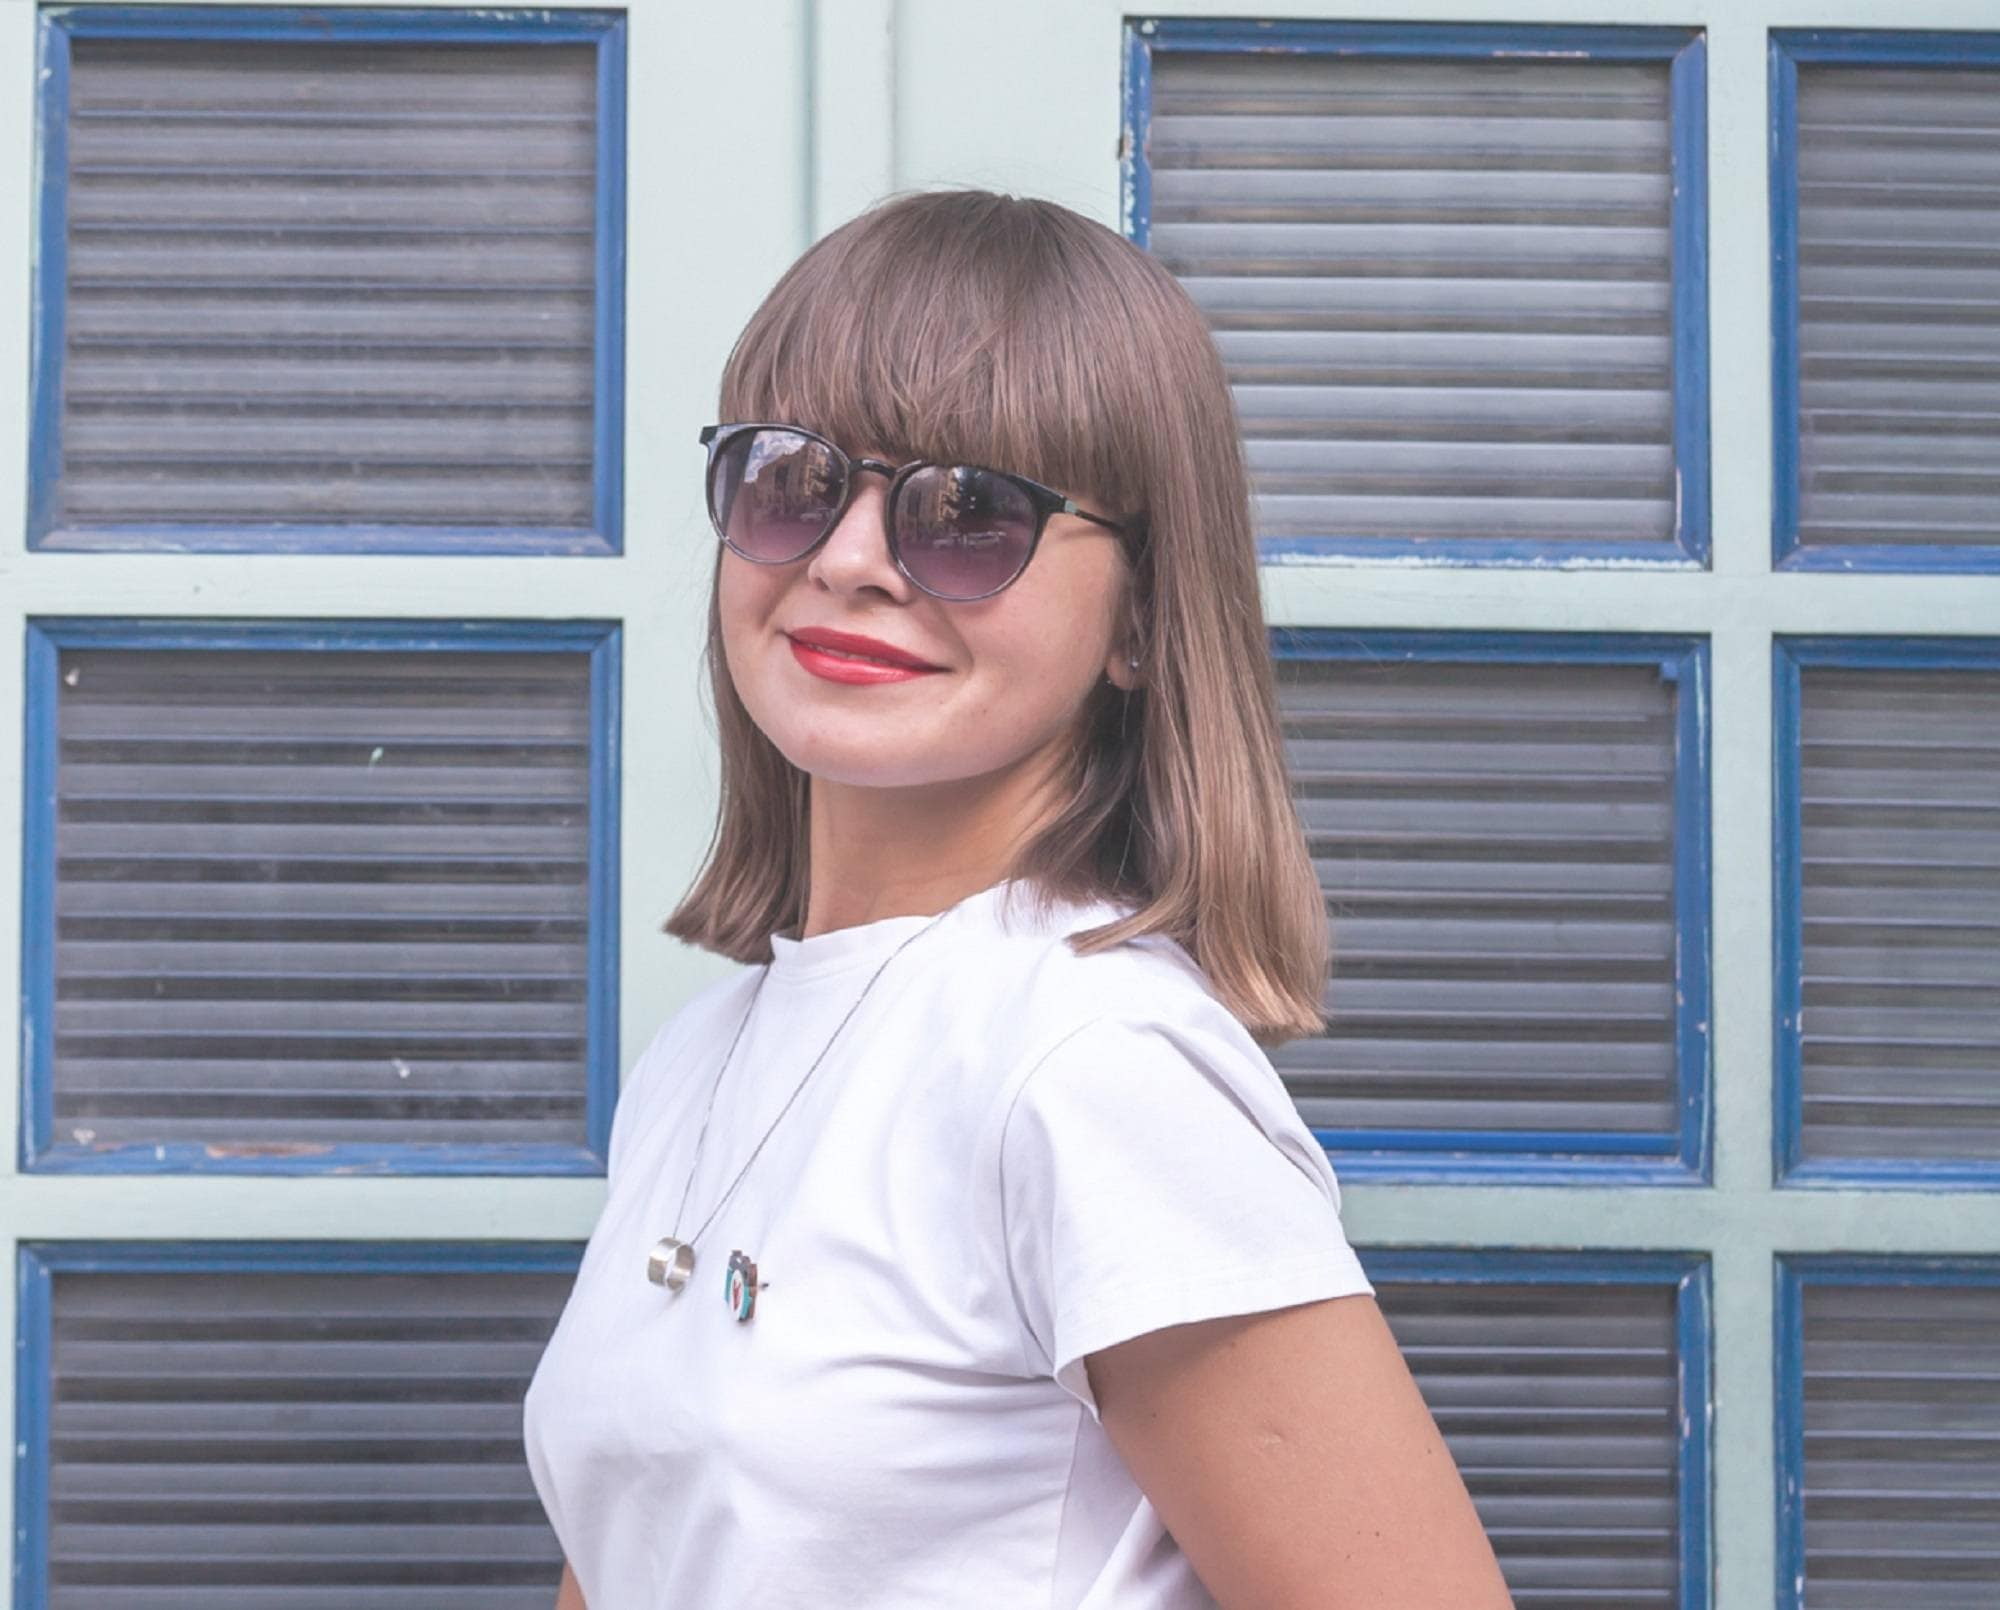 Medium length haircuts with bangs: Closeup shot of a woman with straight brown medium hair with bangs wearing a white shirt against a door